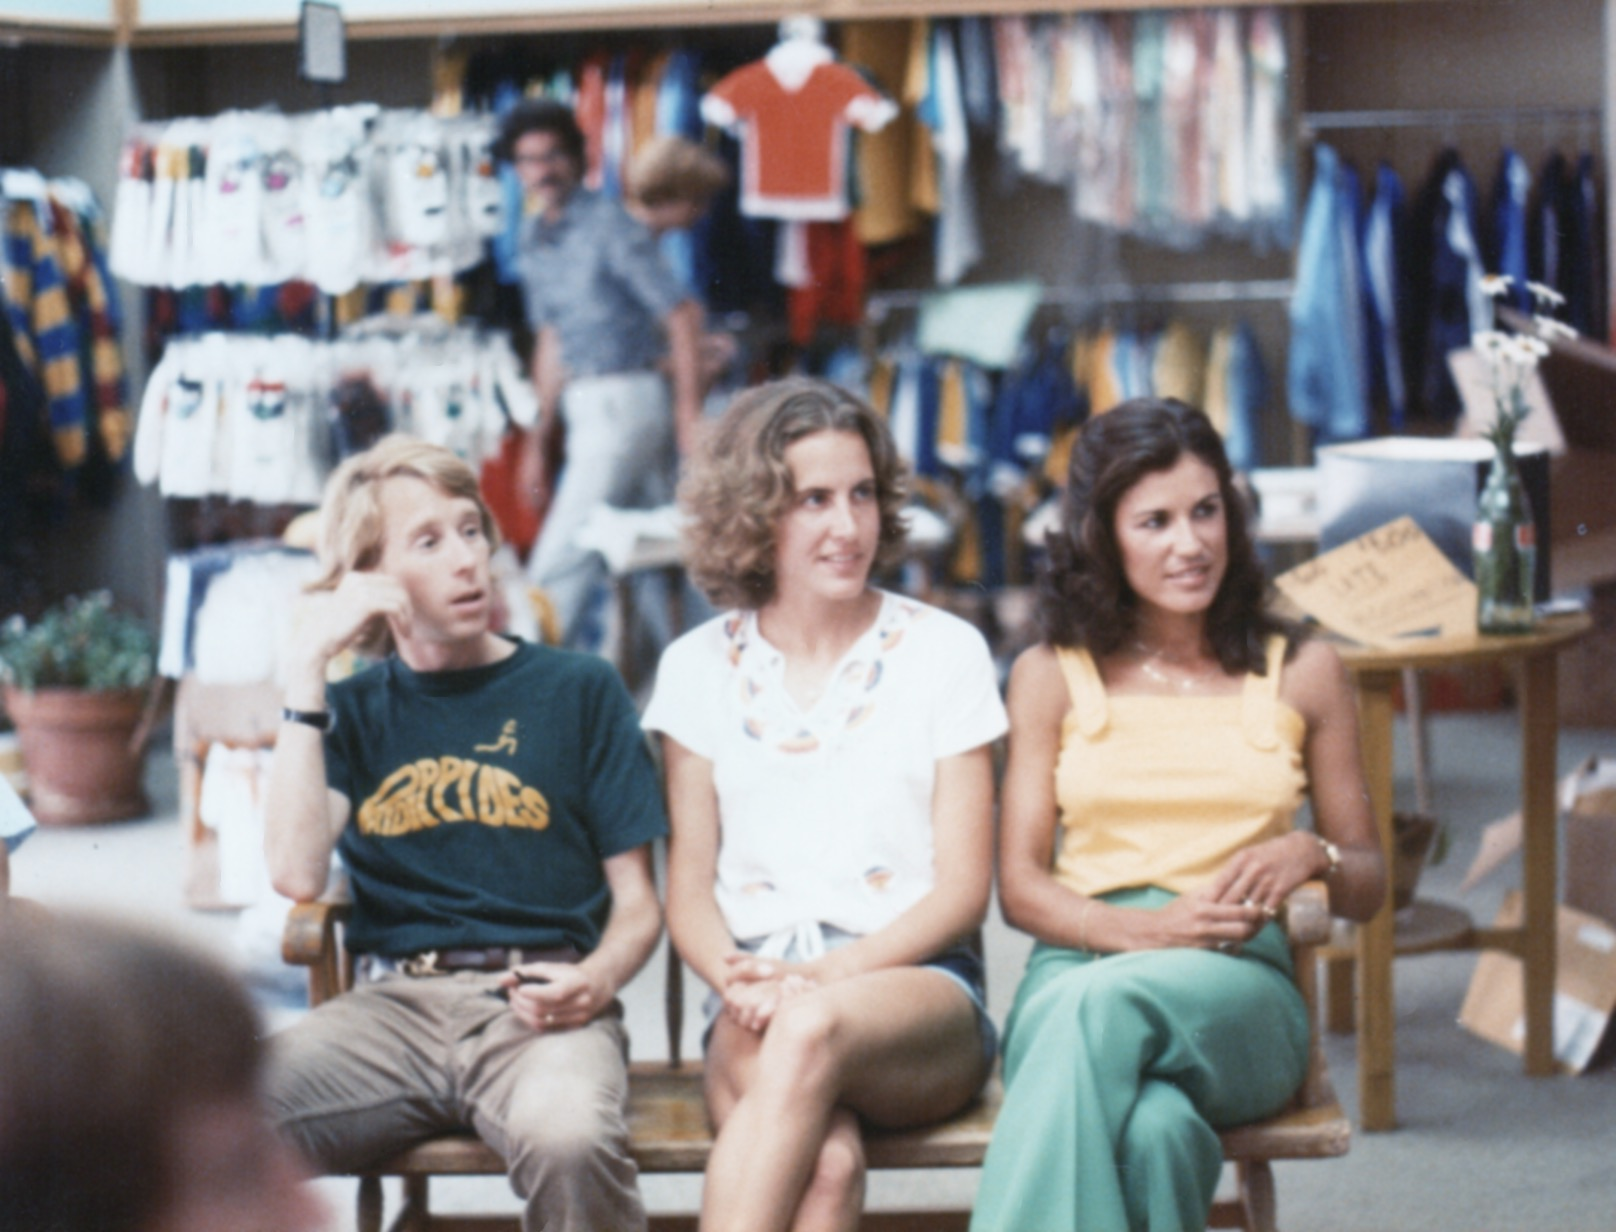 Race headquarters was Galloway's Phidippides Running Store. In this photo, the legendary Bill Rodgers sits in the store with eventual race winner and U.S. 10K record holder (at the time) Peg Neppel and five-time Peachtree winner Gayle Barron.